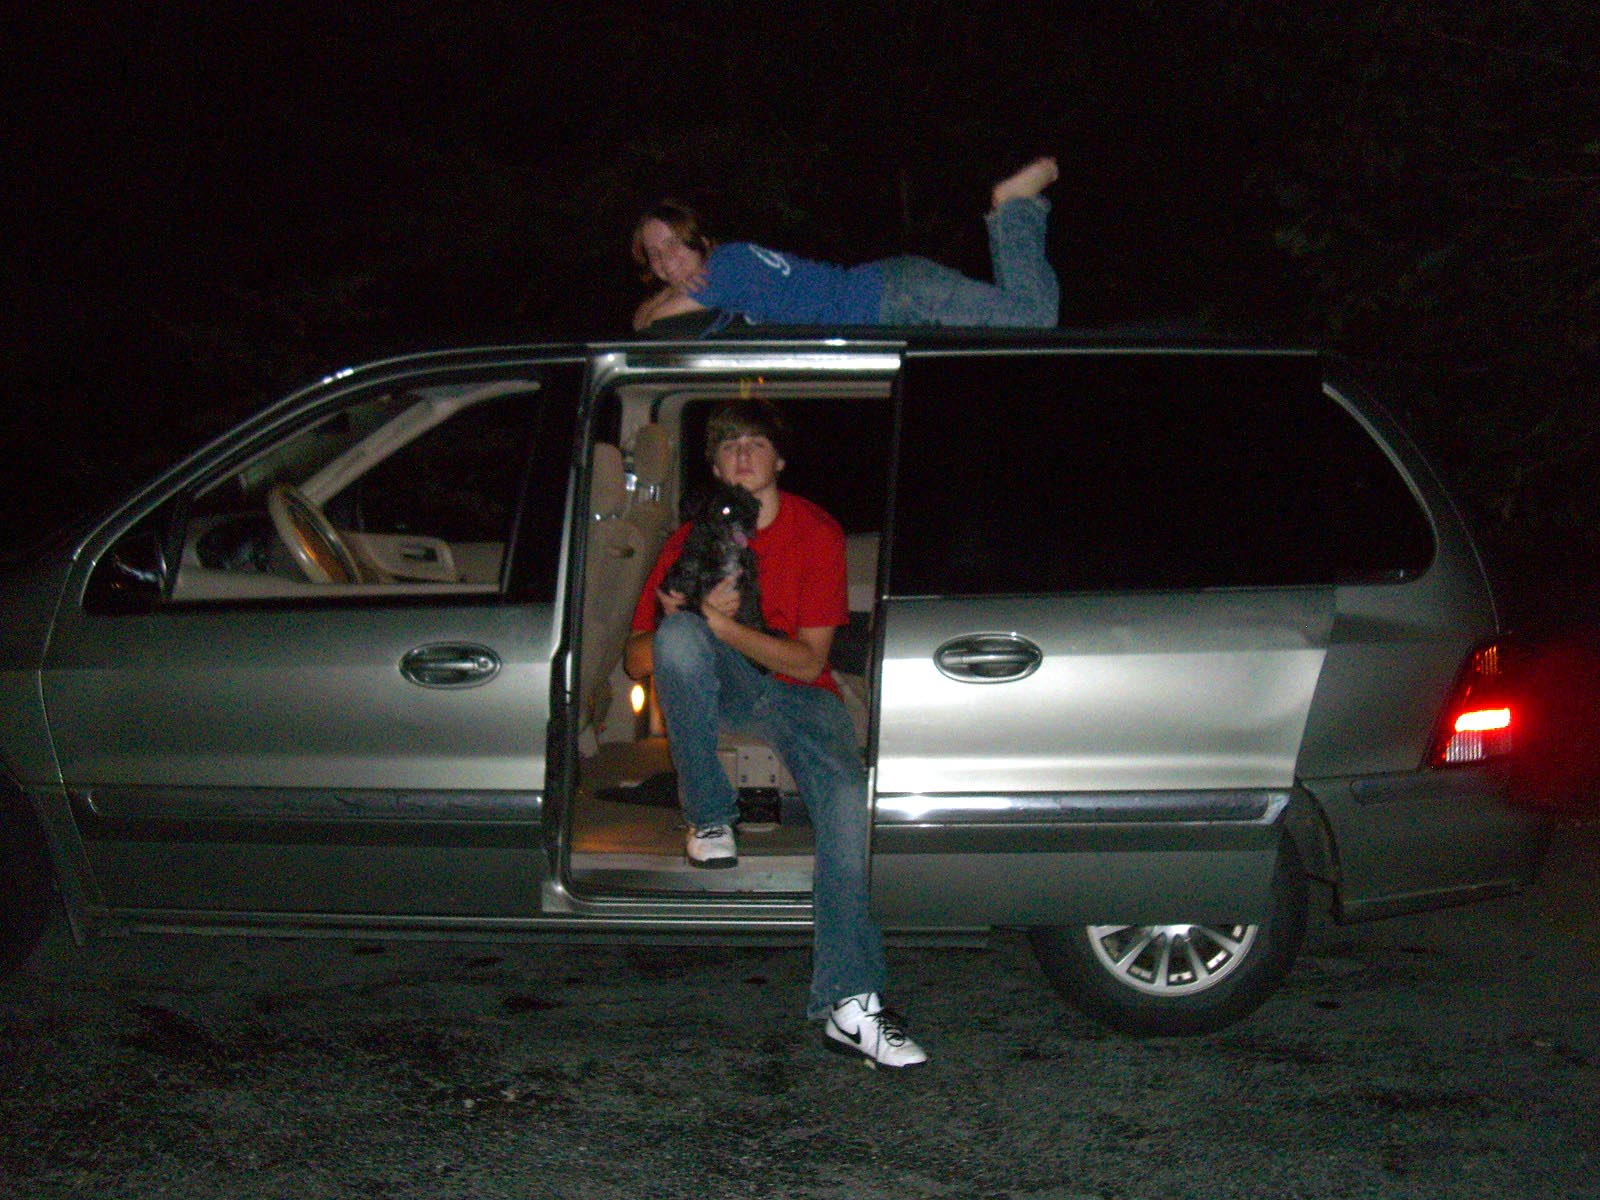 The Last Night With the Van